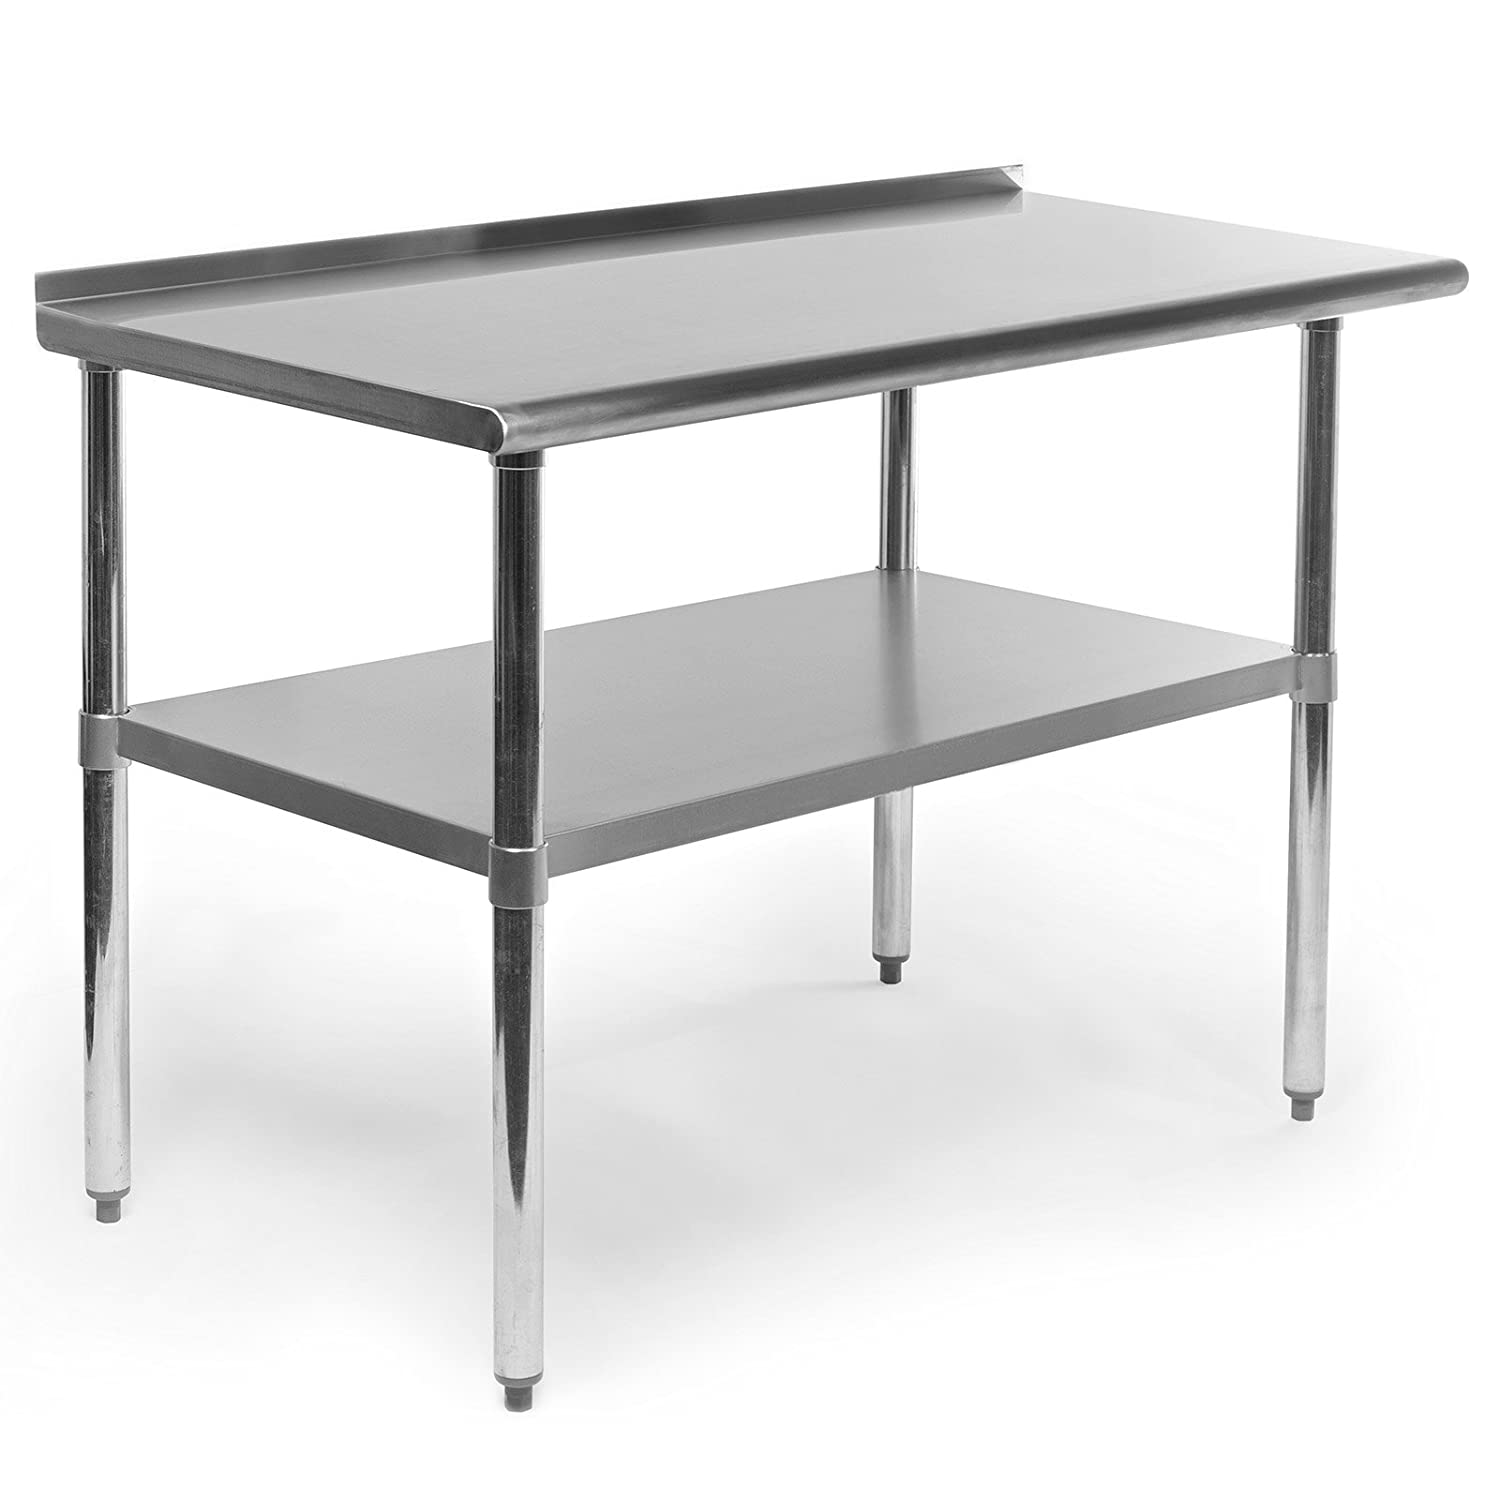 amazoncom gridmann stainless steel commercial kitchen prep work table with backsplash 48 x 24 inches industrial scientific